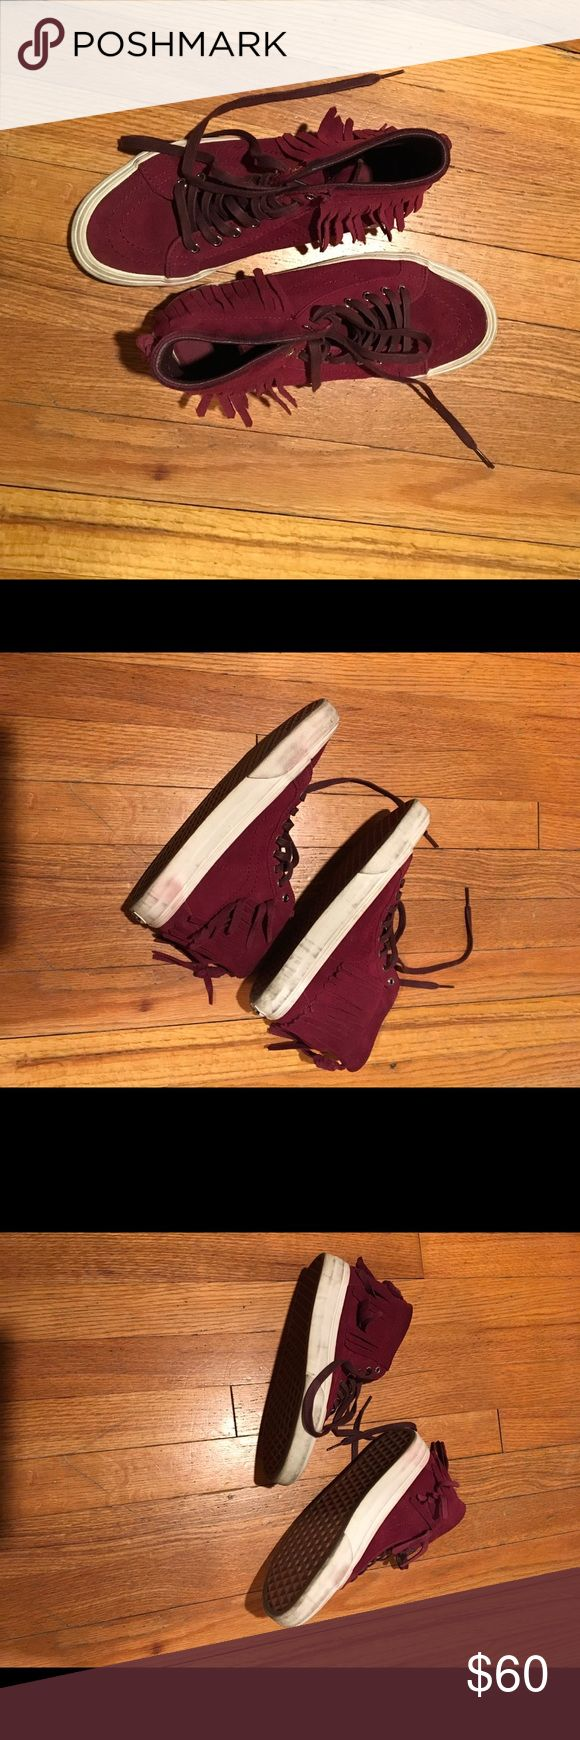 Madewell burgundy fringe Vans Good condition! Worn 3 or 4 times. Vans Shoes Sneakers